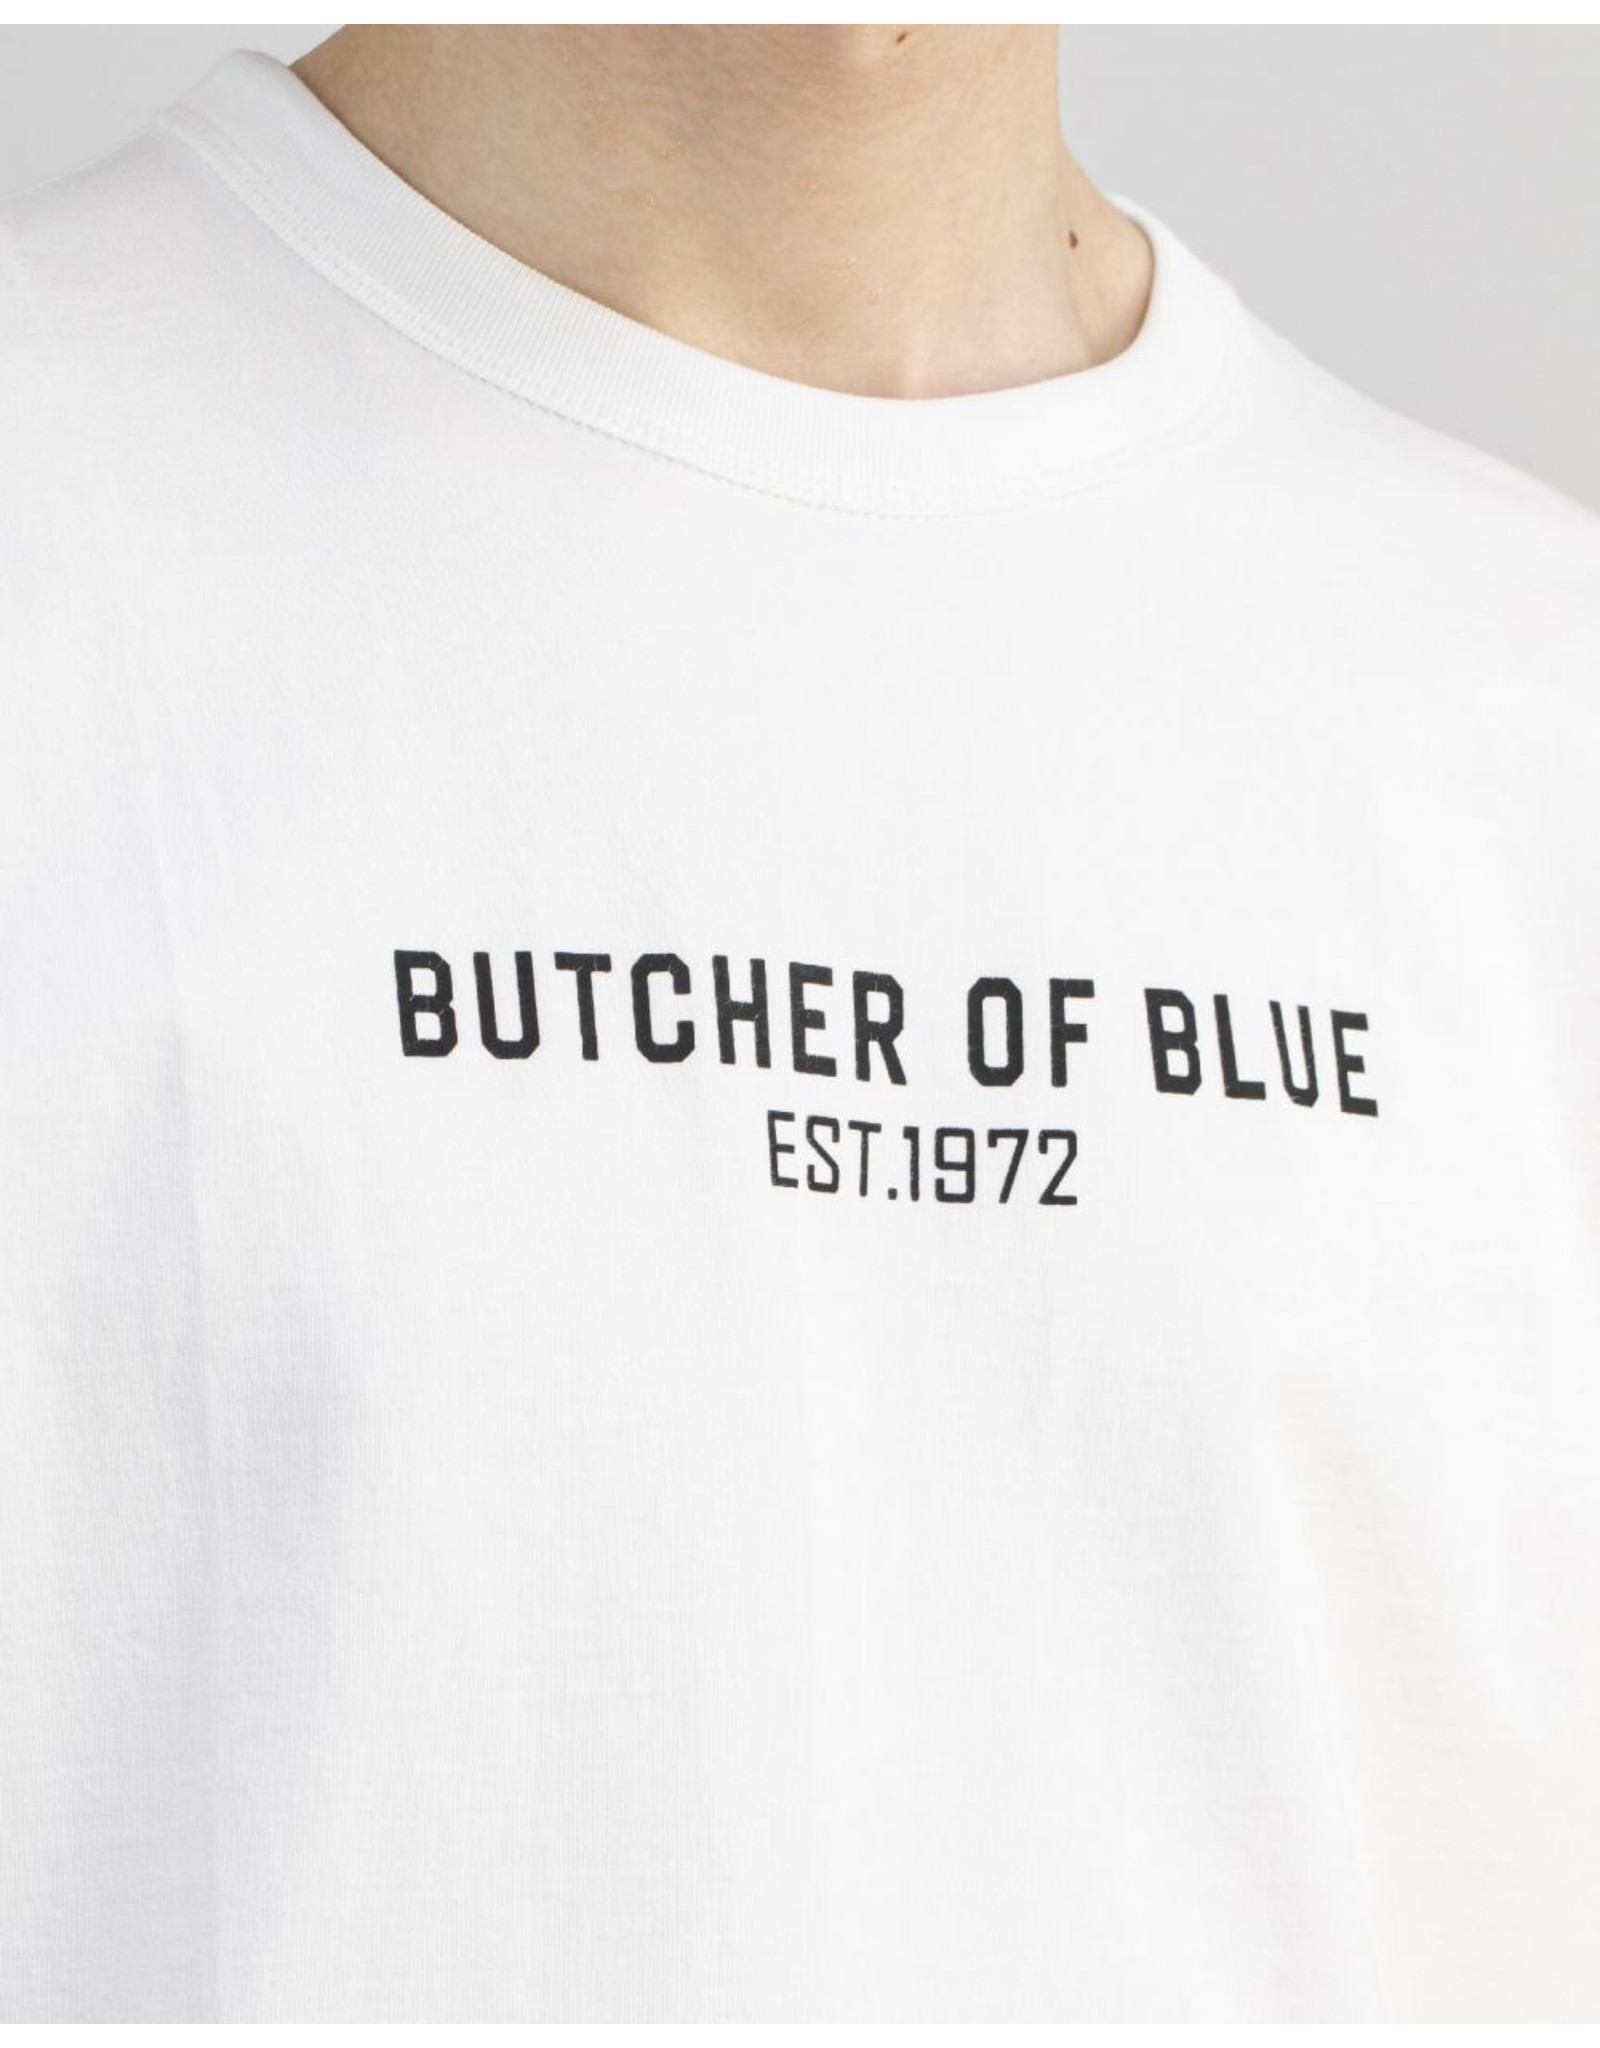 Butcher of Blue Army straight tee s/s